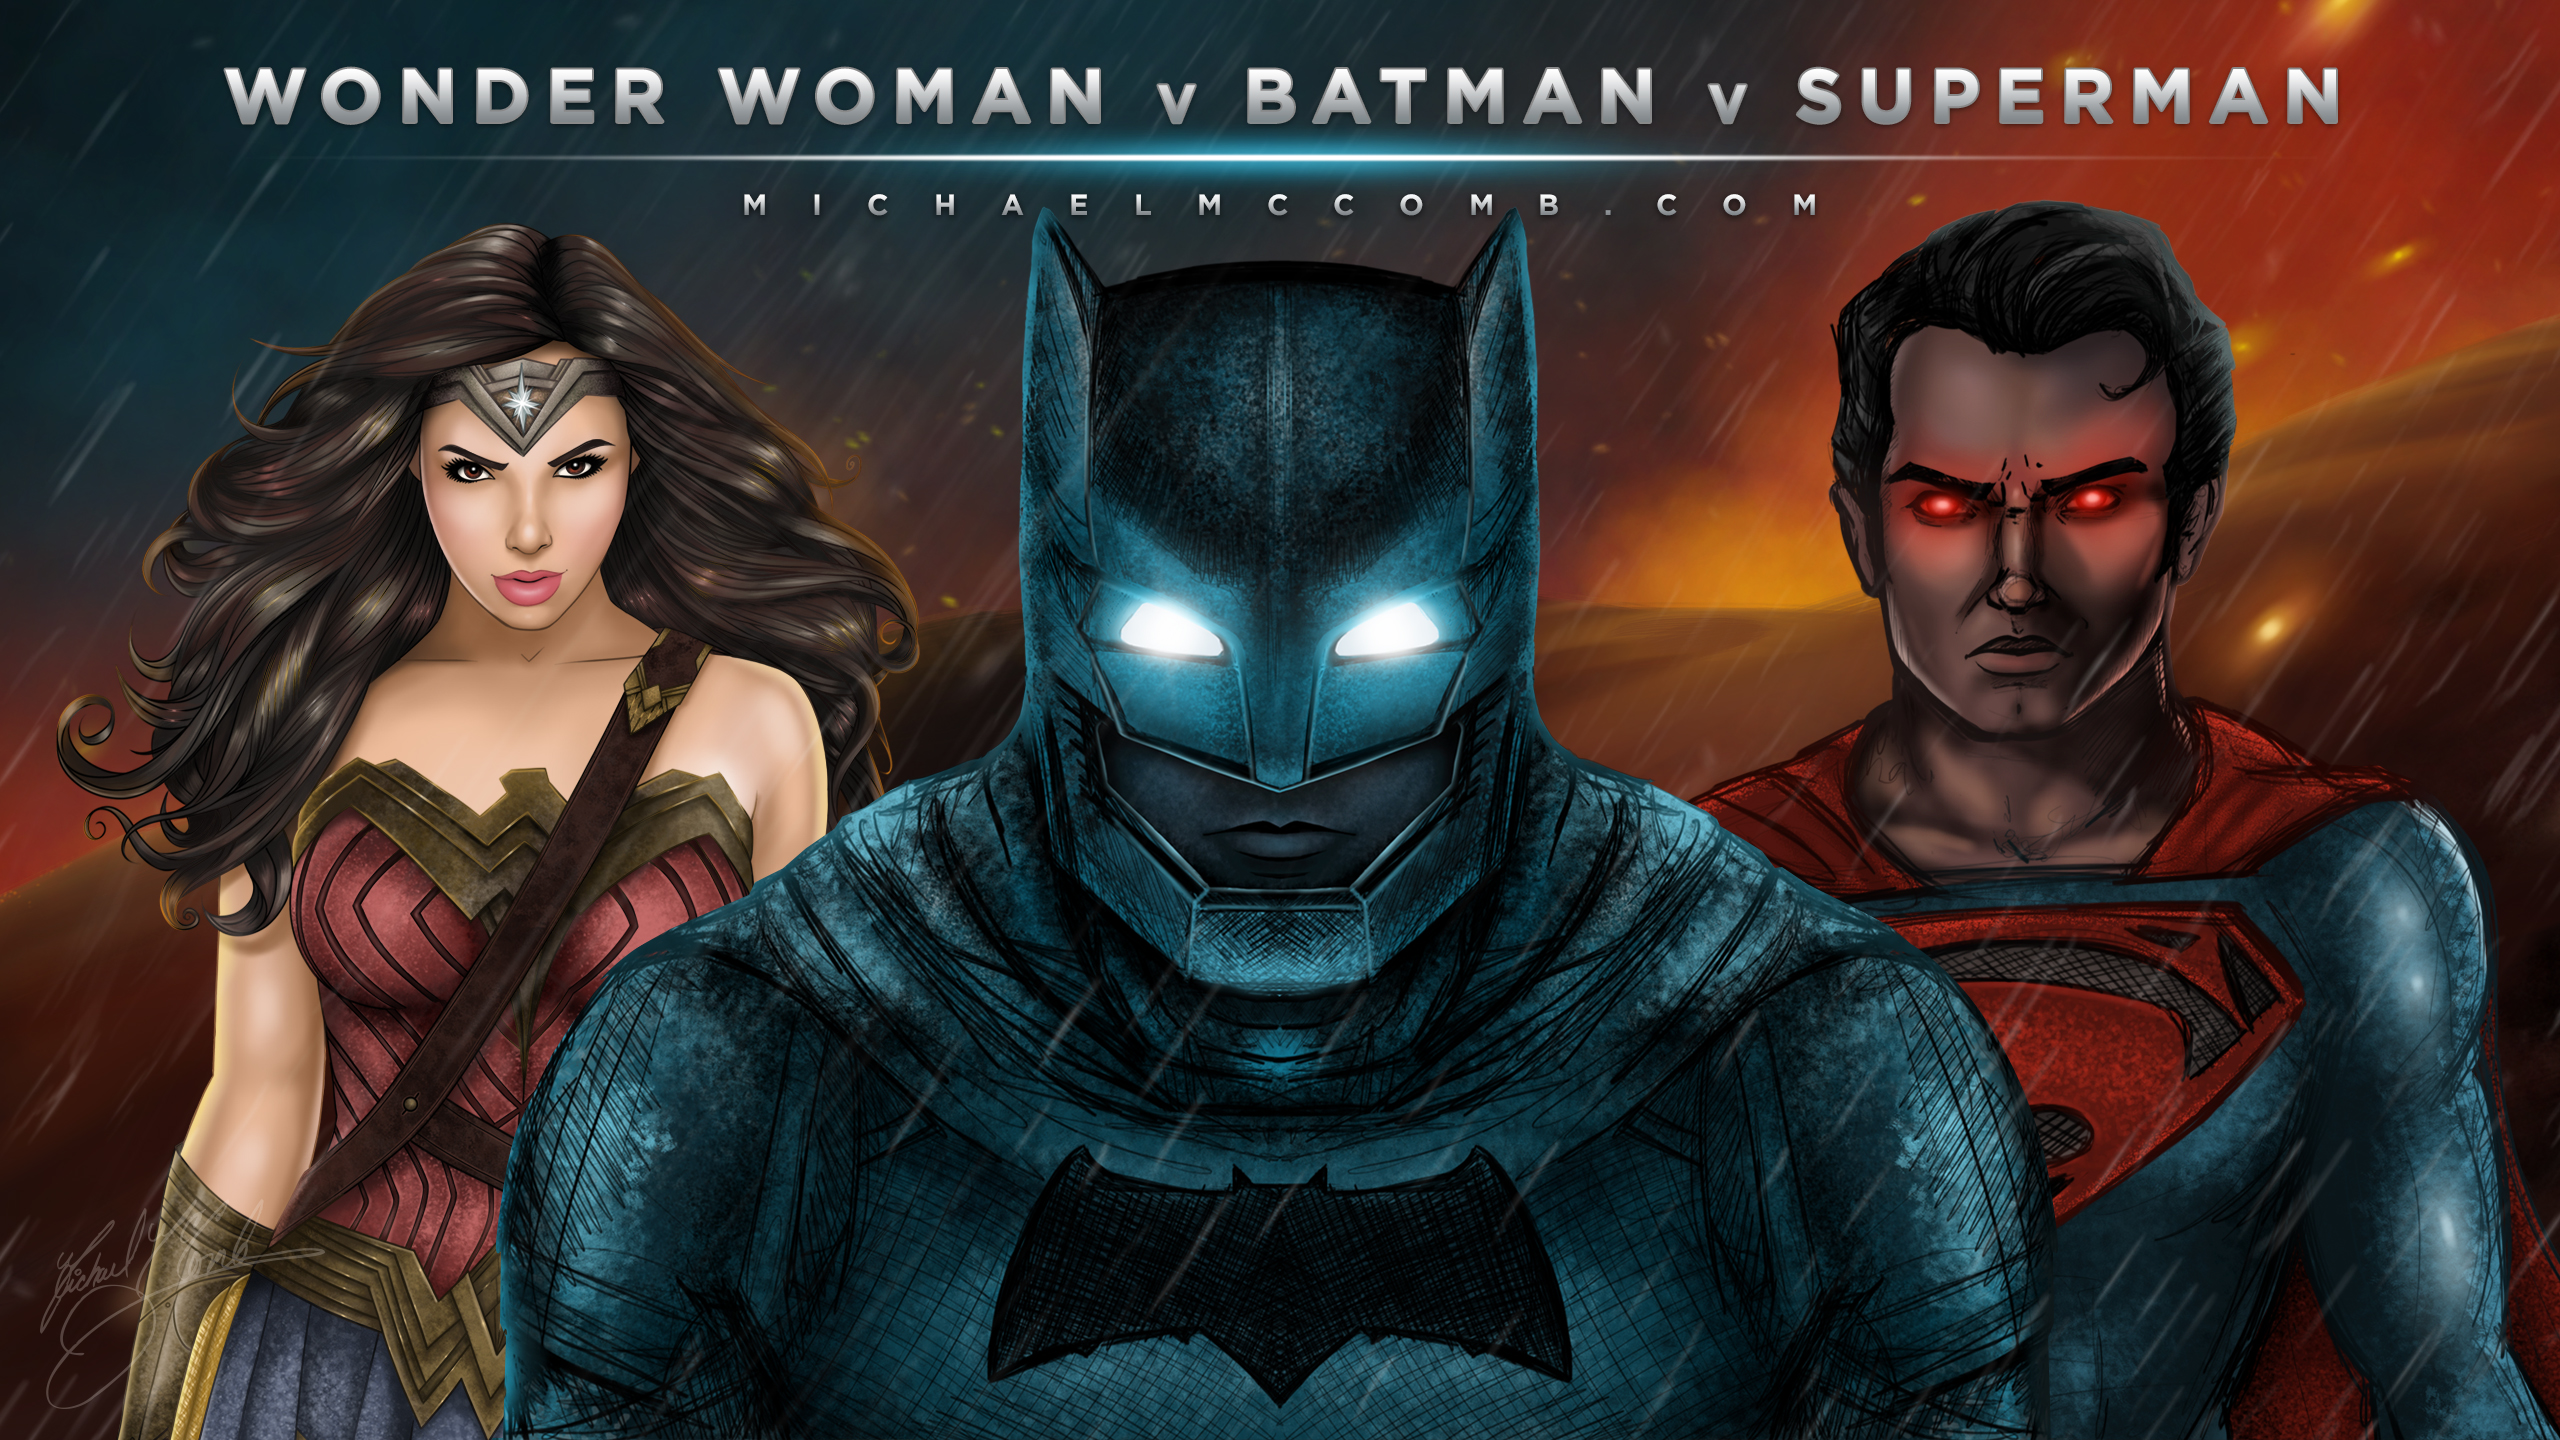 free wallpaper wonder woman v batman v superman michael mccomb